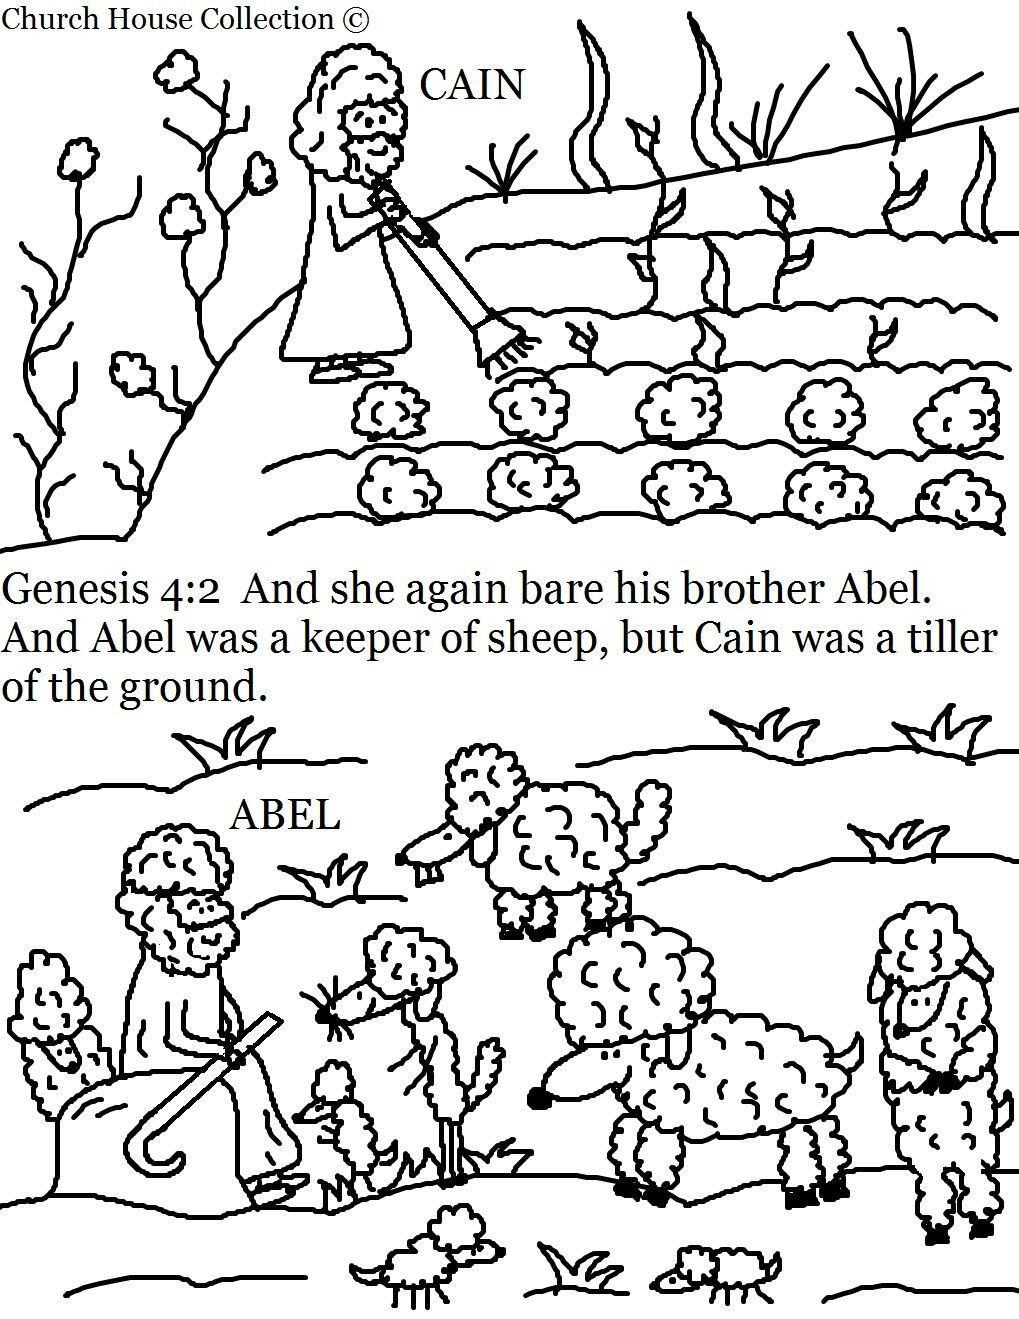 Cain And Abel Coloring Page Cain And Abel Coloring Pages In 2020 Cain And Abel Sunday School Coloring Pages Toddler Bible